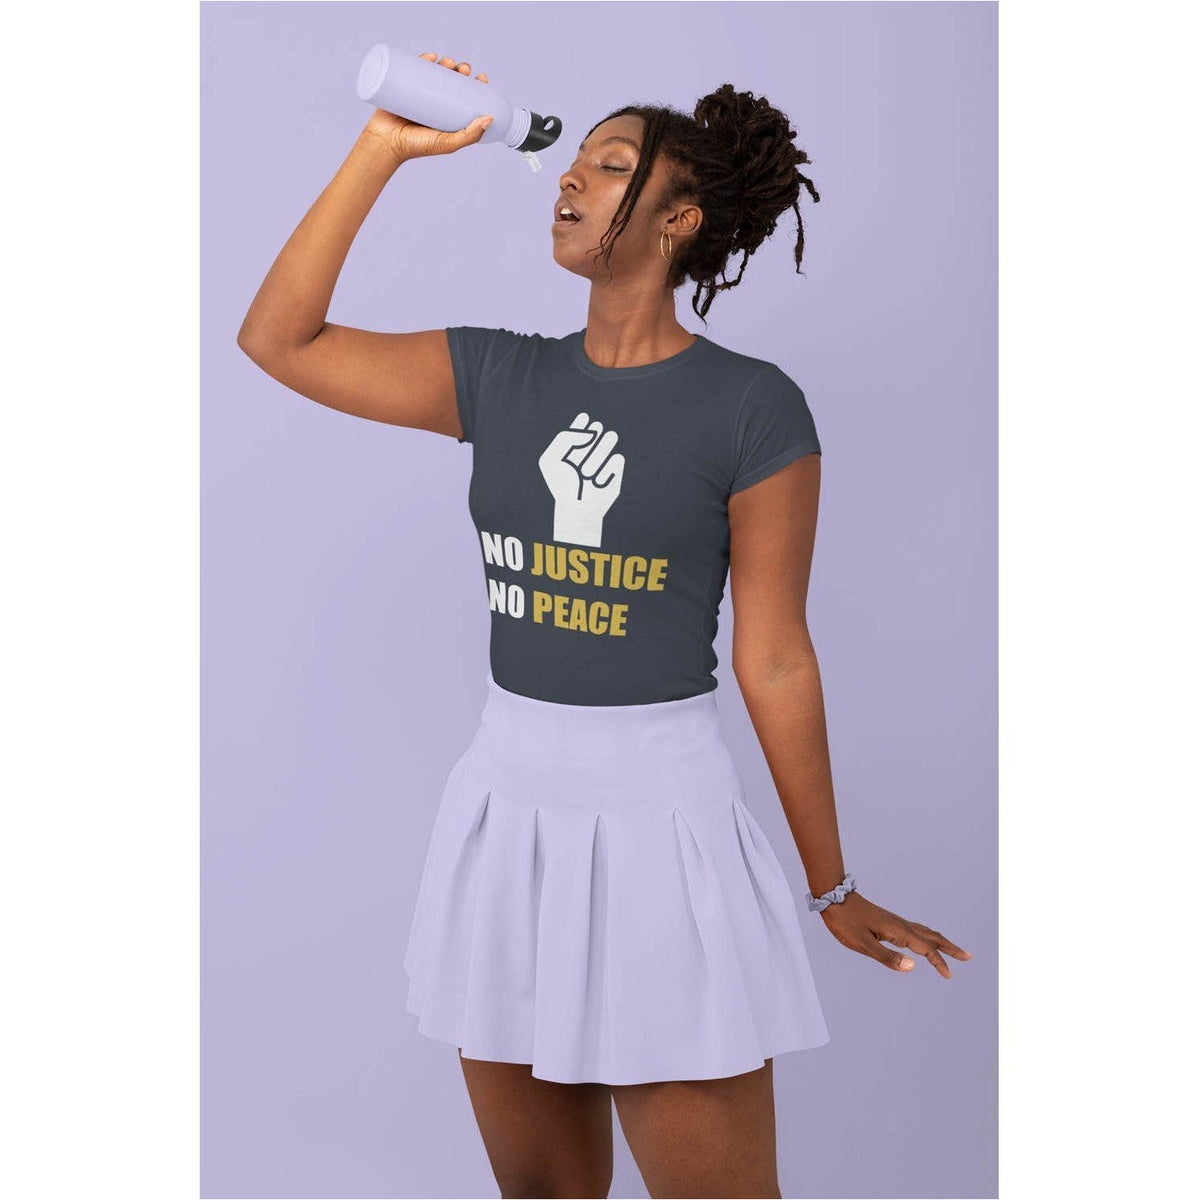 No Justice No Peace Women's T-shirt